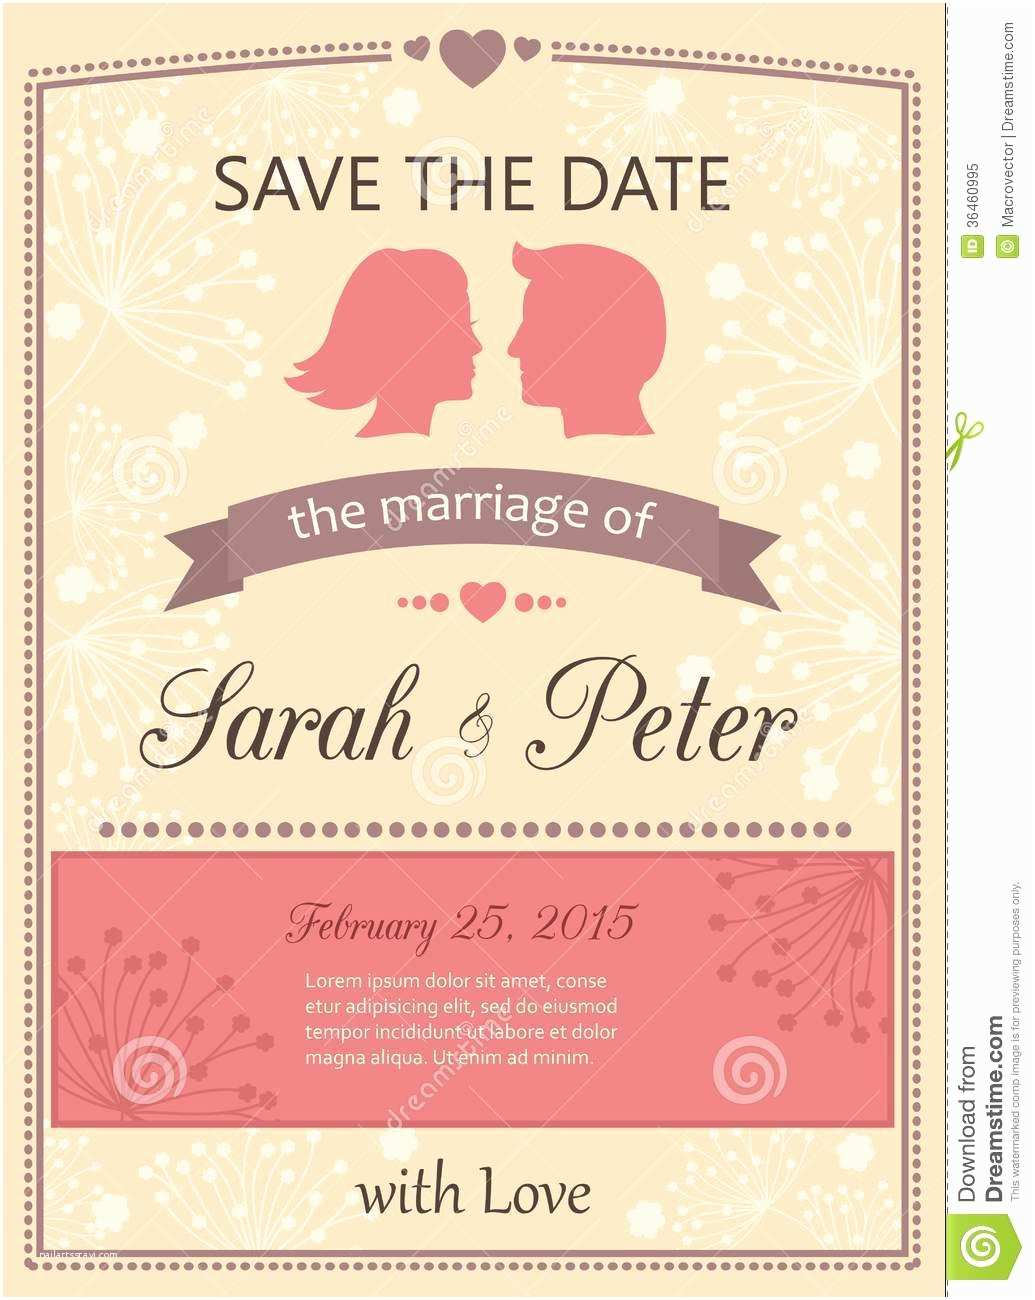 save the date invitations templates free